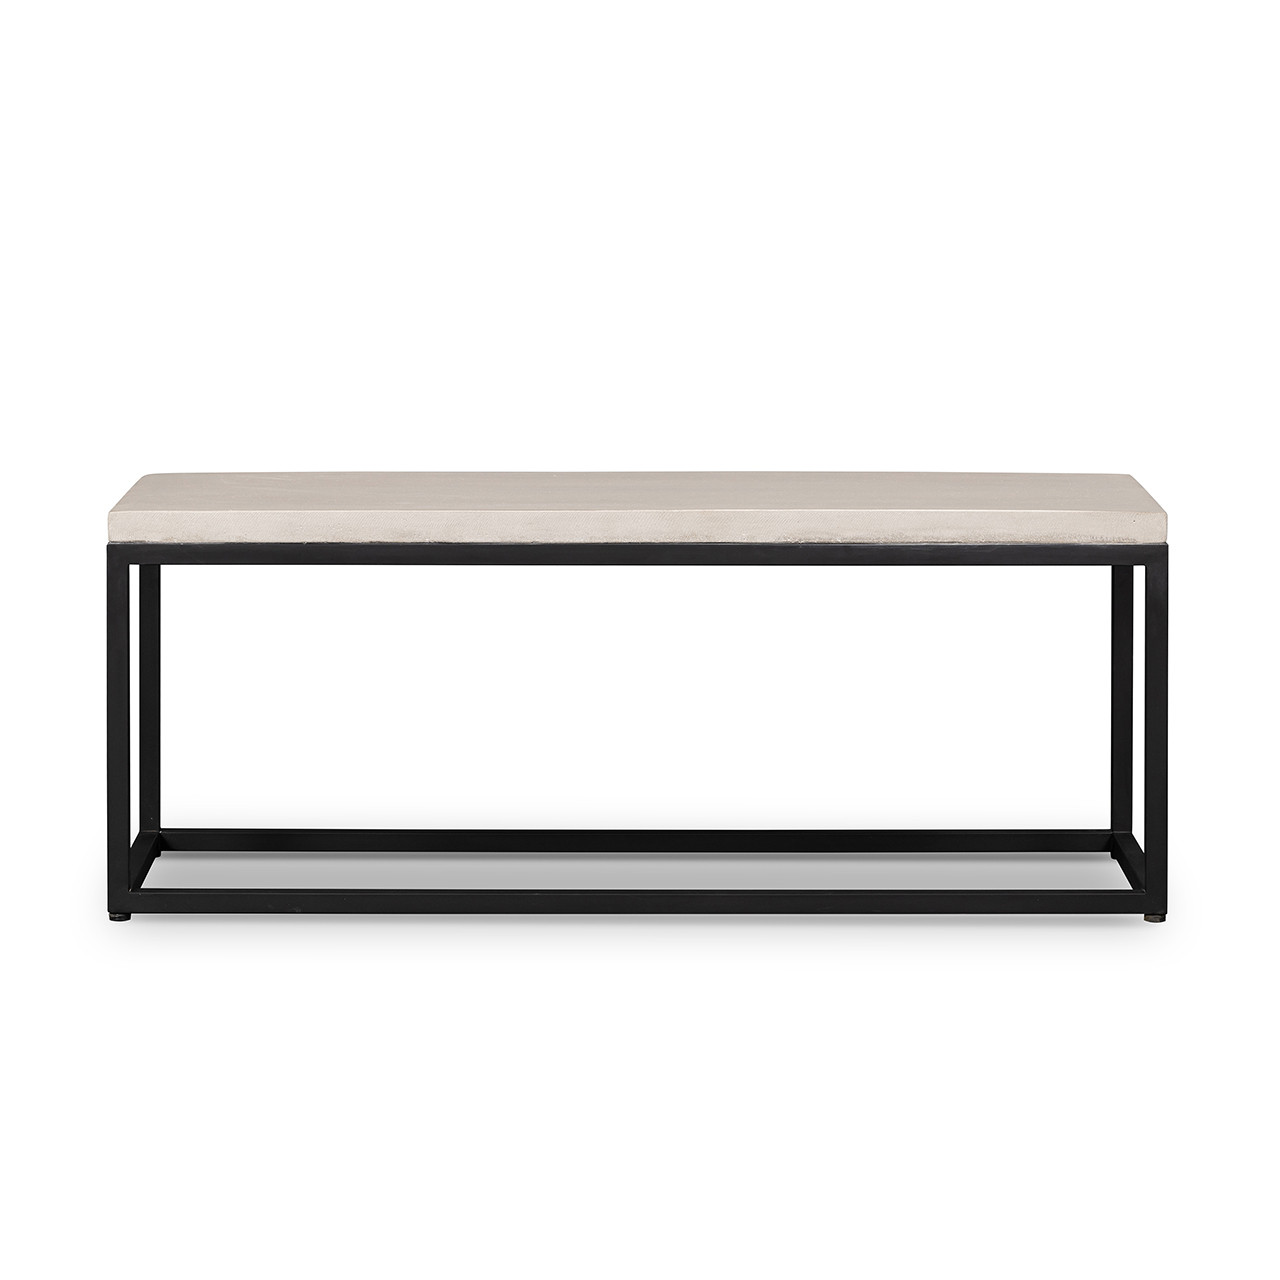 Mell Bench